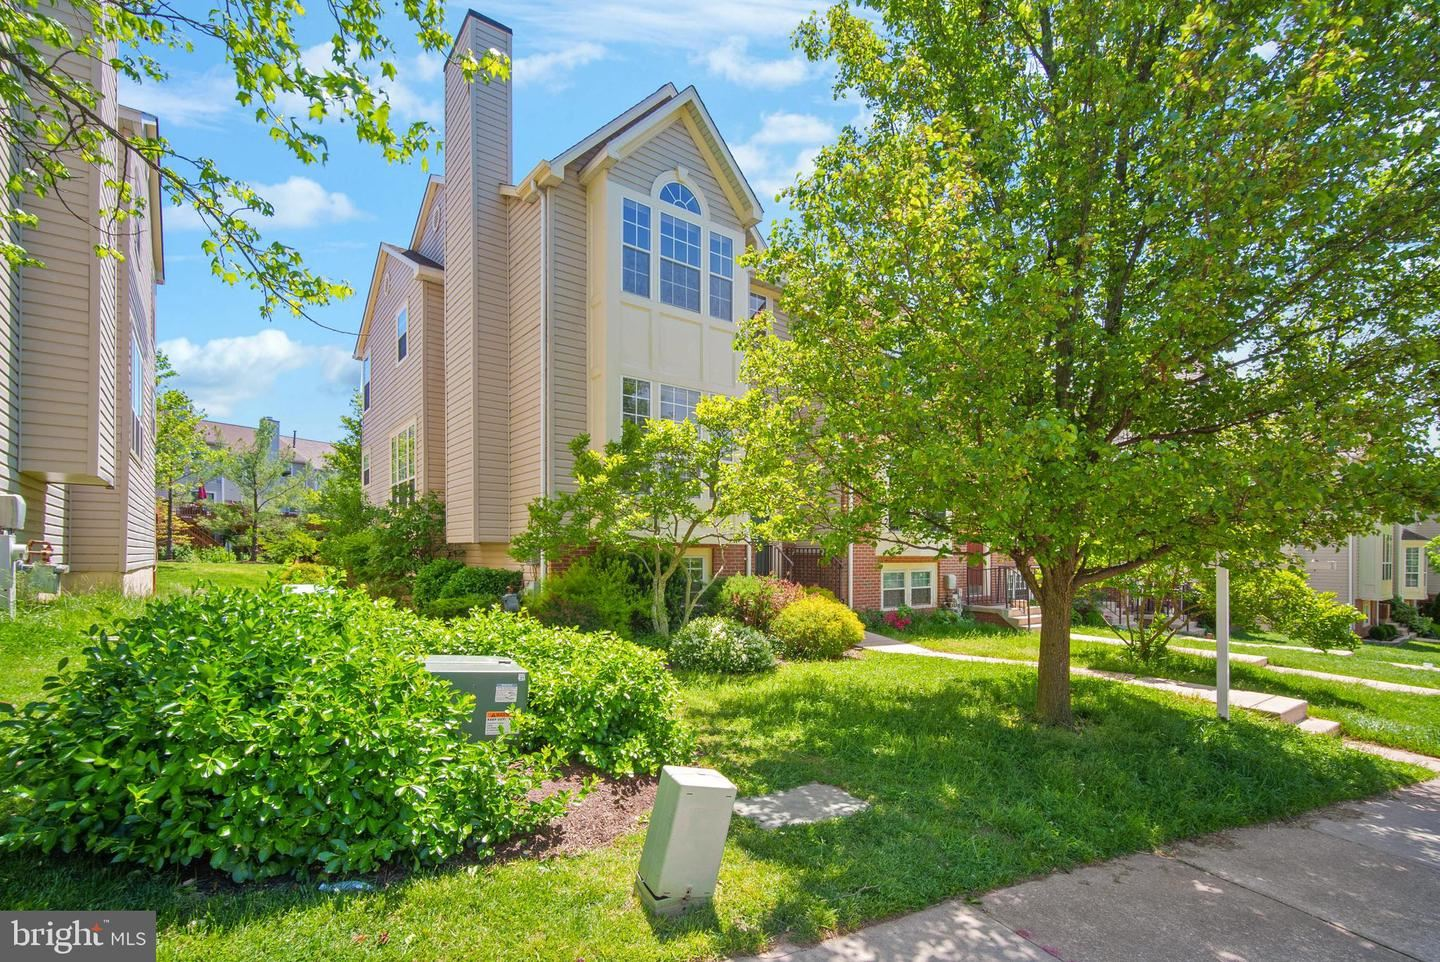 7665 BLUEBERRY HILL LN, Ellicott City, MD 21043 - MLS#: MDHW294332